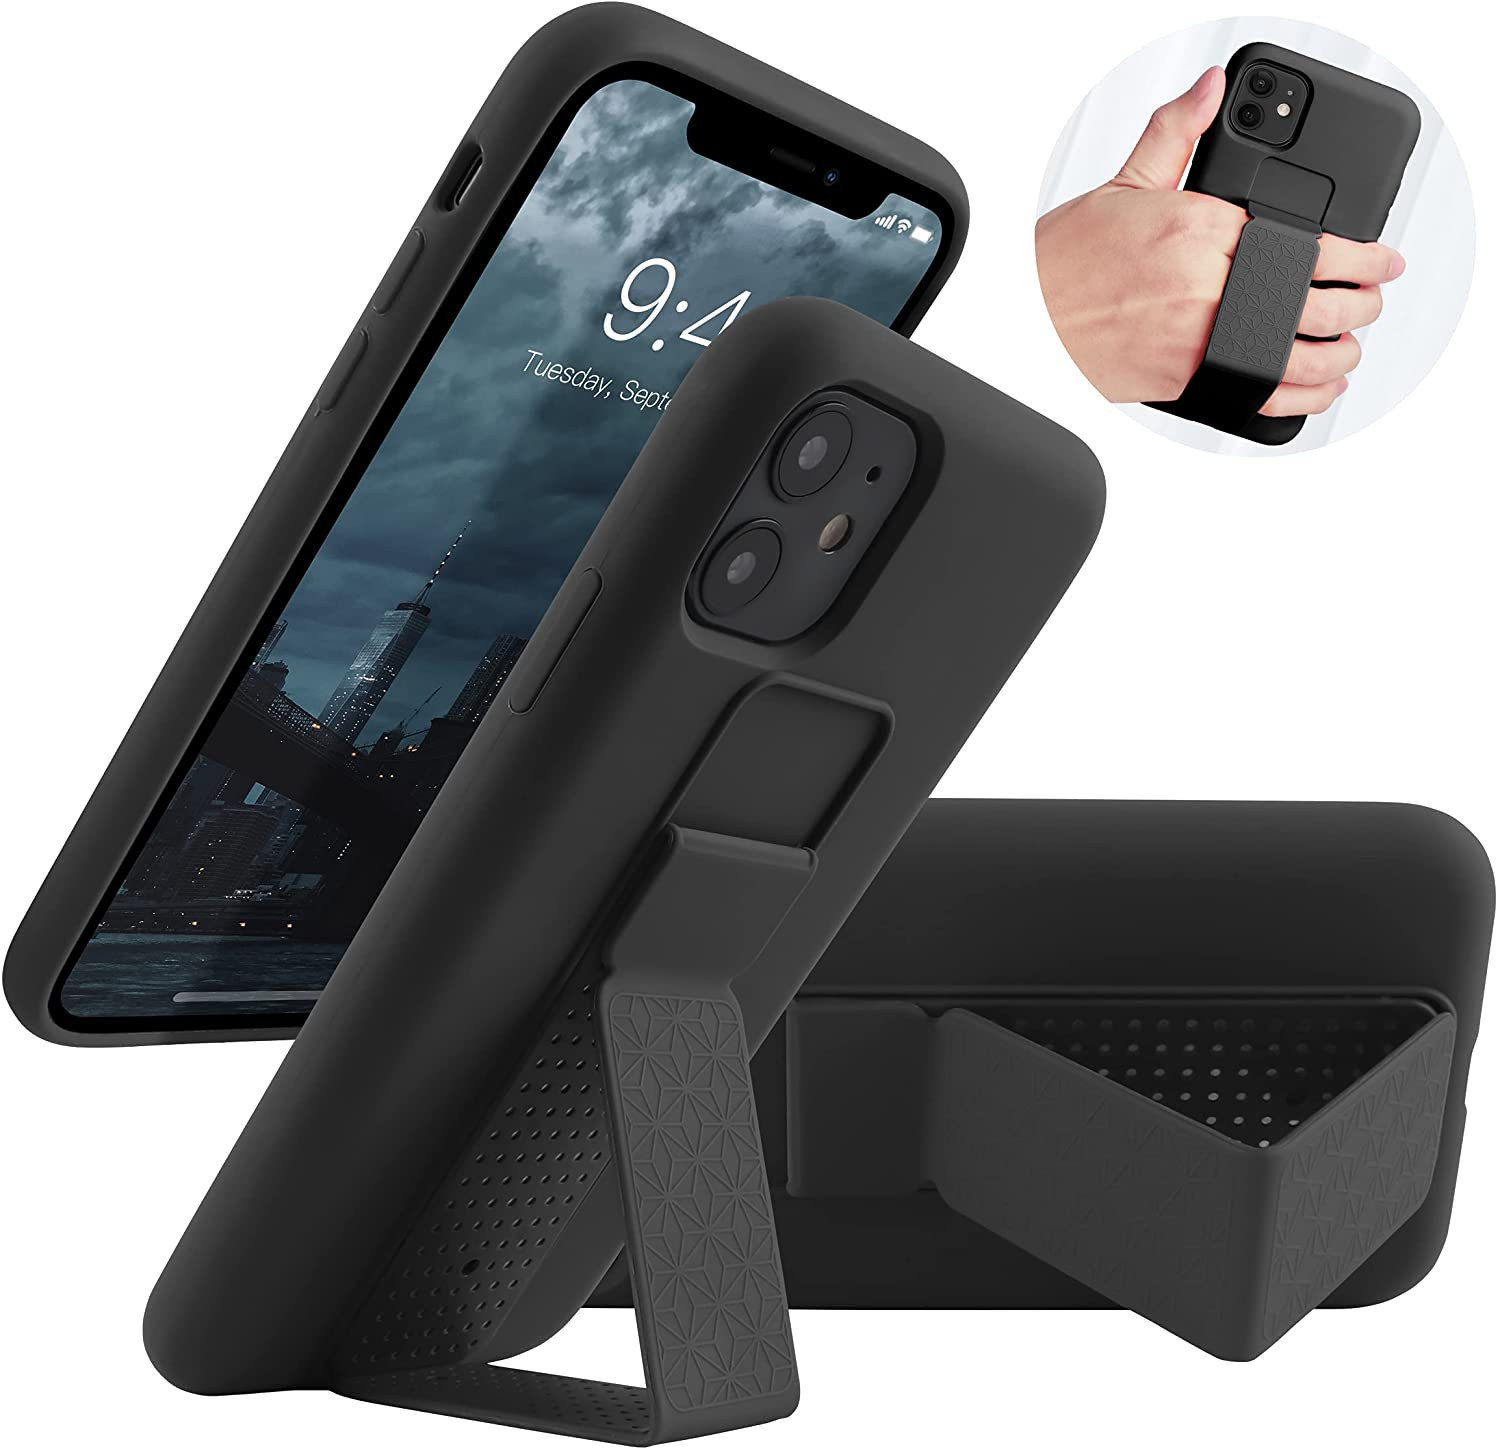 LAUDTEC Silicone Kickstand Case Compatible with iPhone 11 case Vertical and Horizontal Stand Hand Strap Metal Kickstand, Flexible Soft Liquid Silicone Stand Case for iPhone 11(Black)